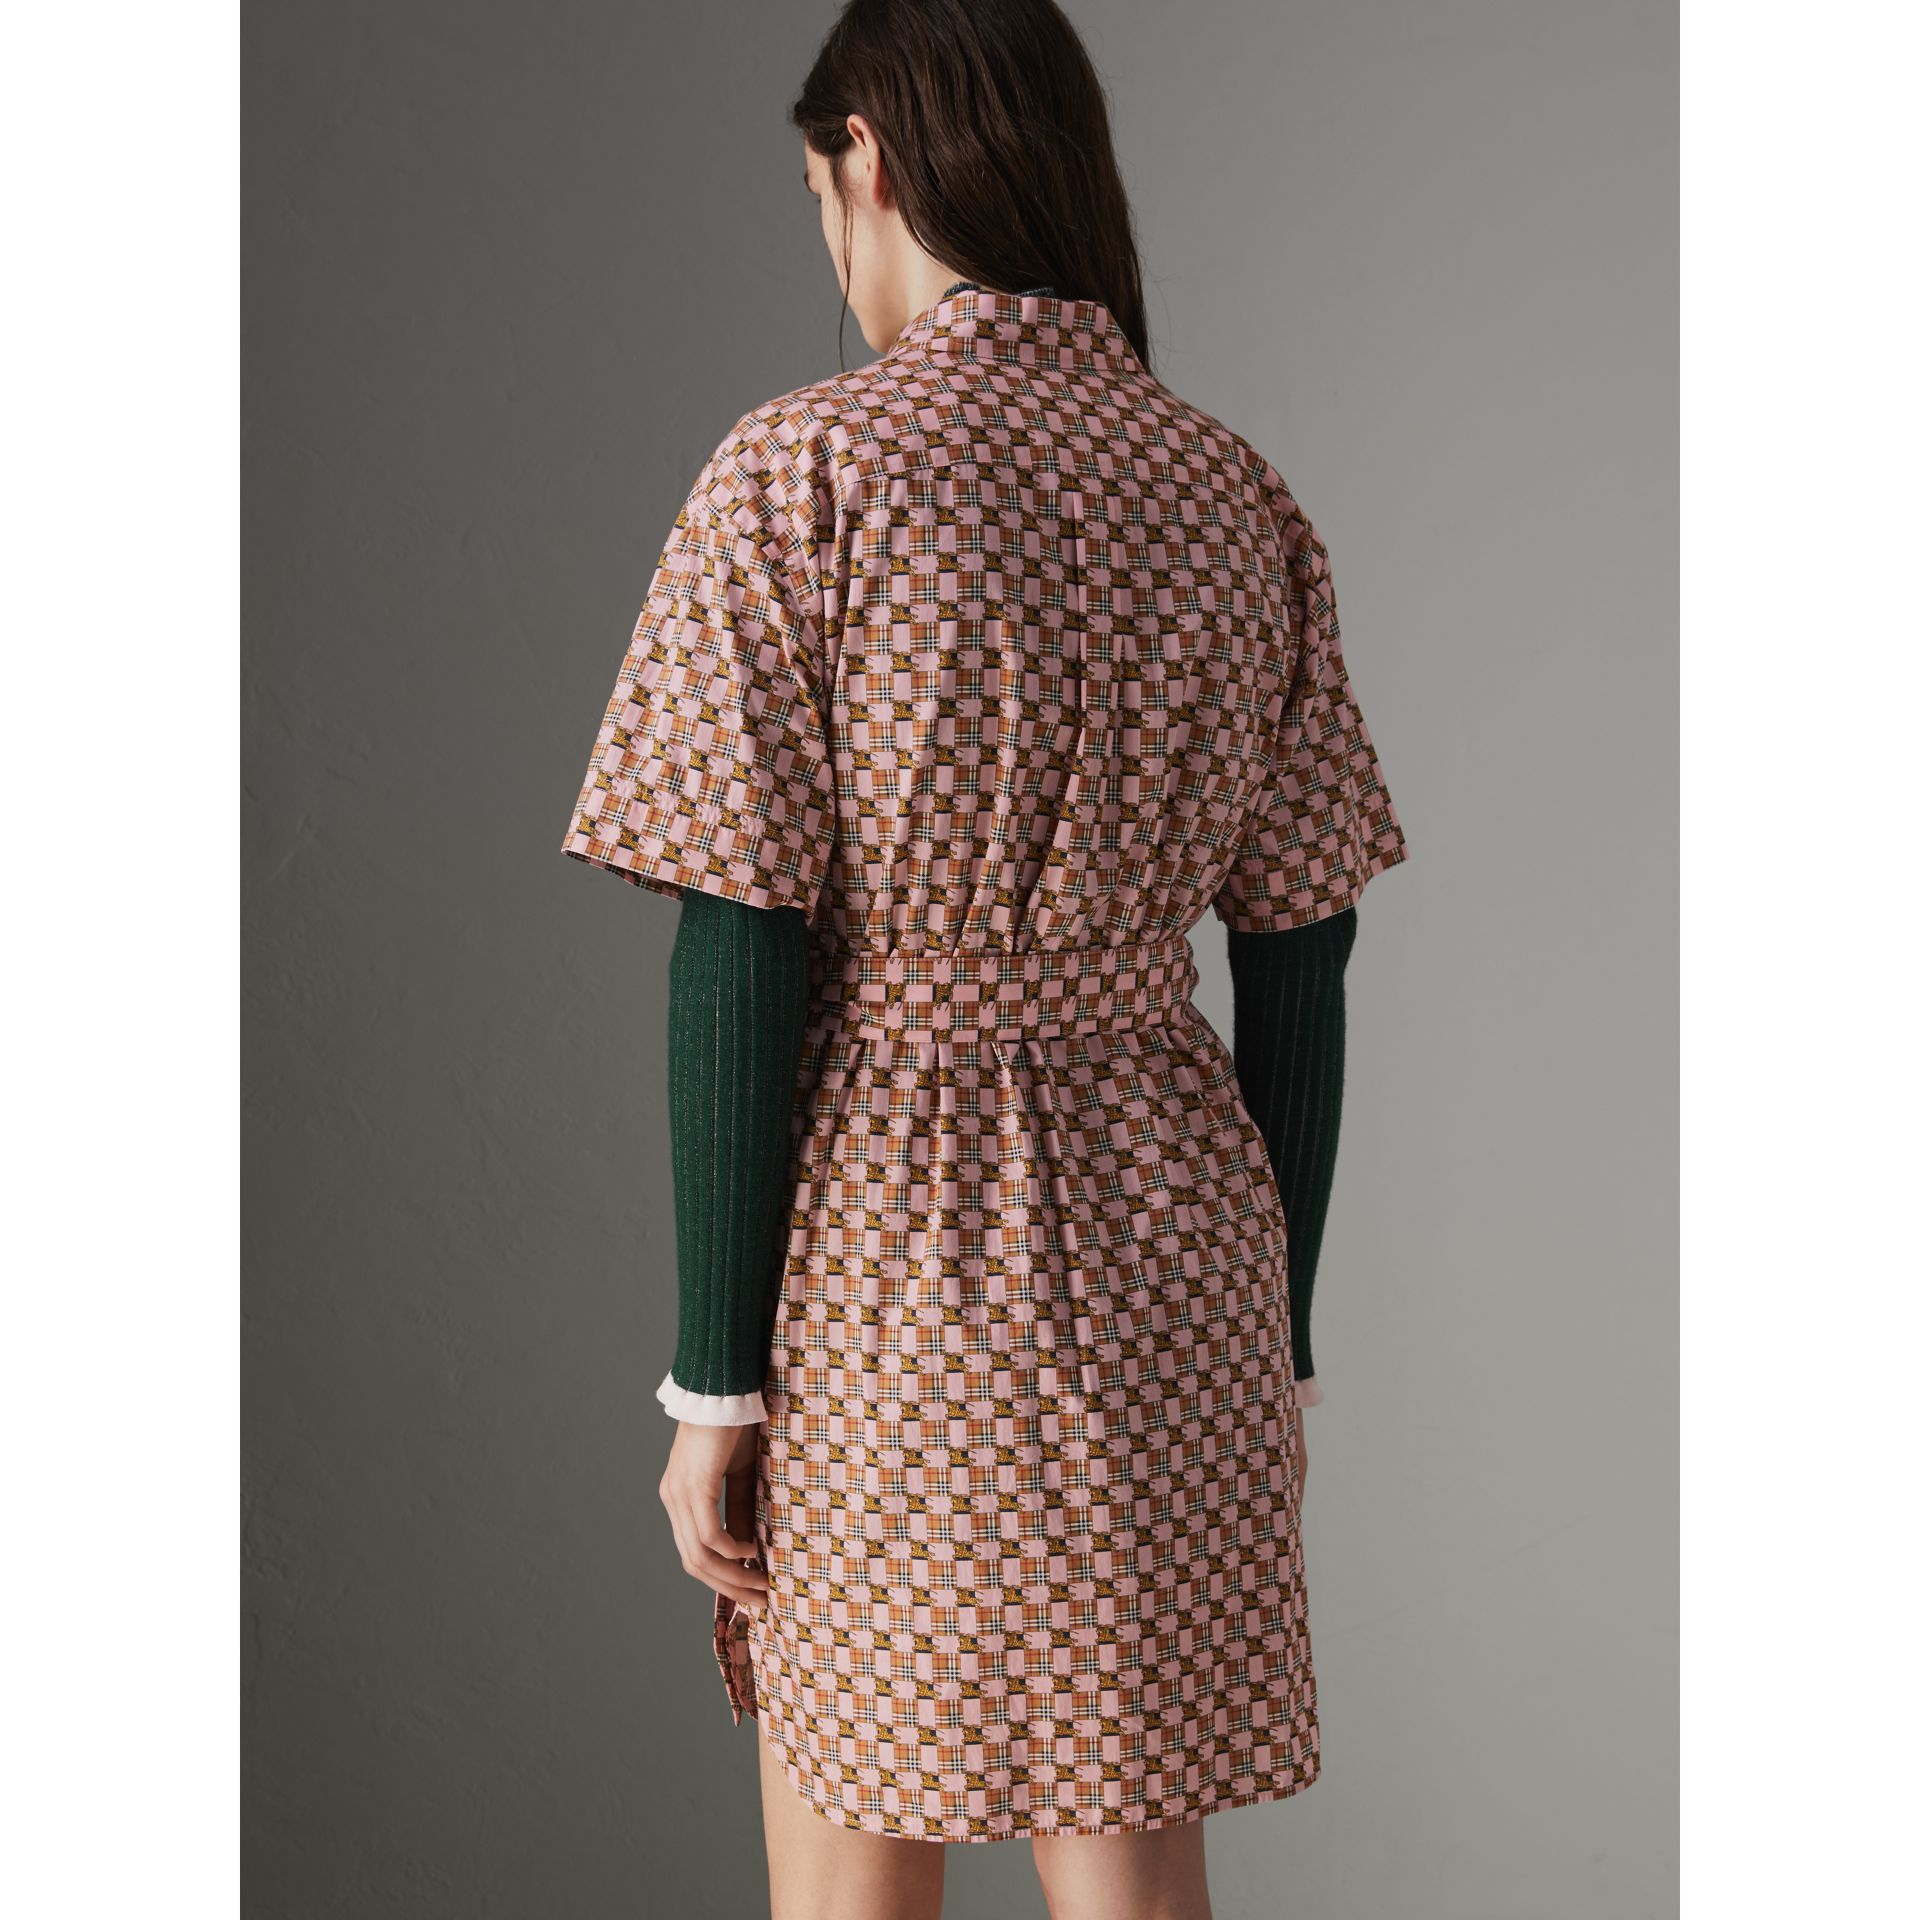 Tiled Archive Print Cotton Shirt Dress in Pink - Women | Burberry - gallery image 2